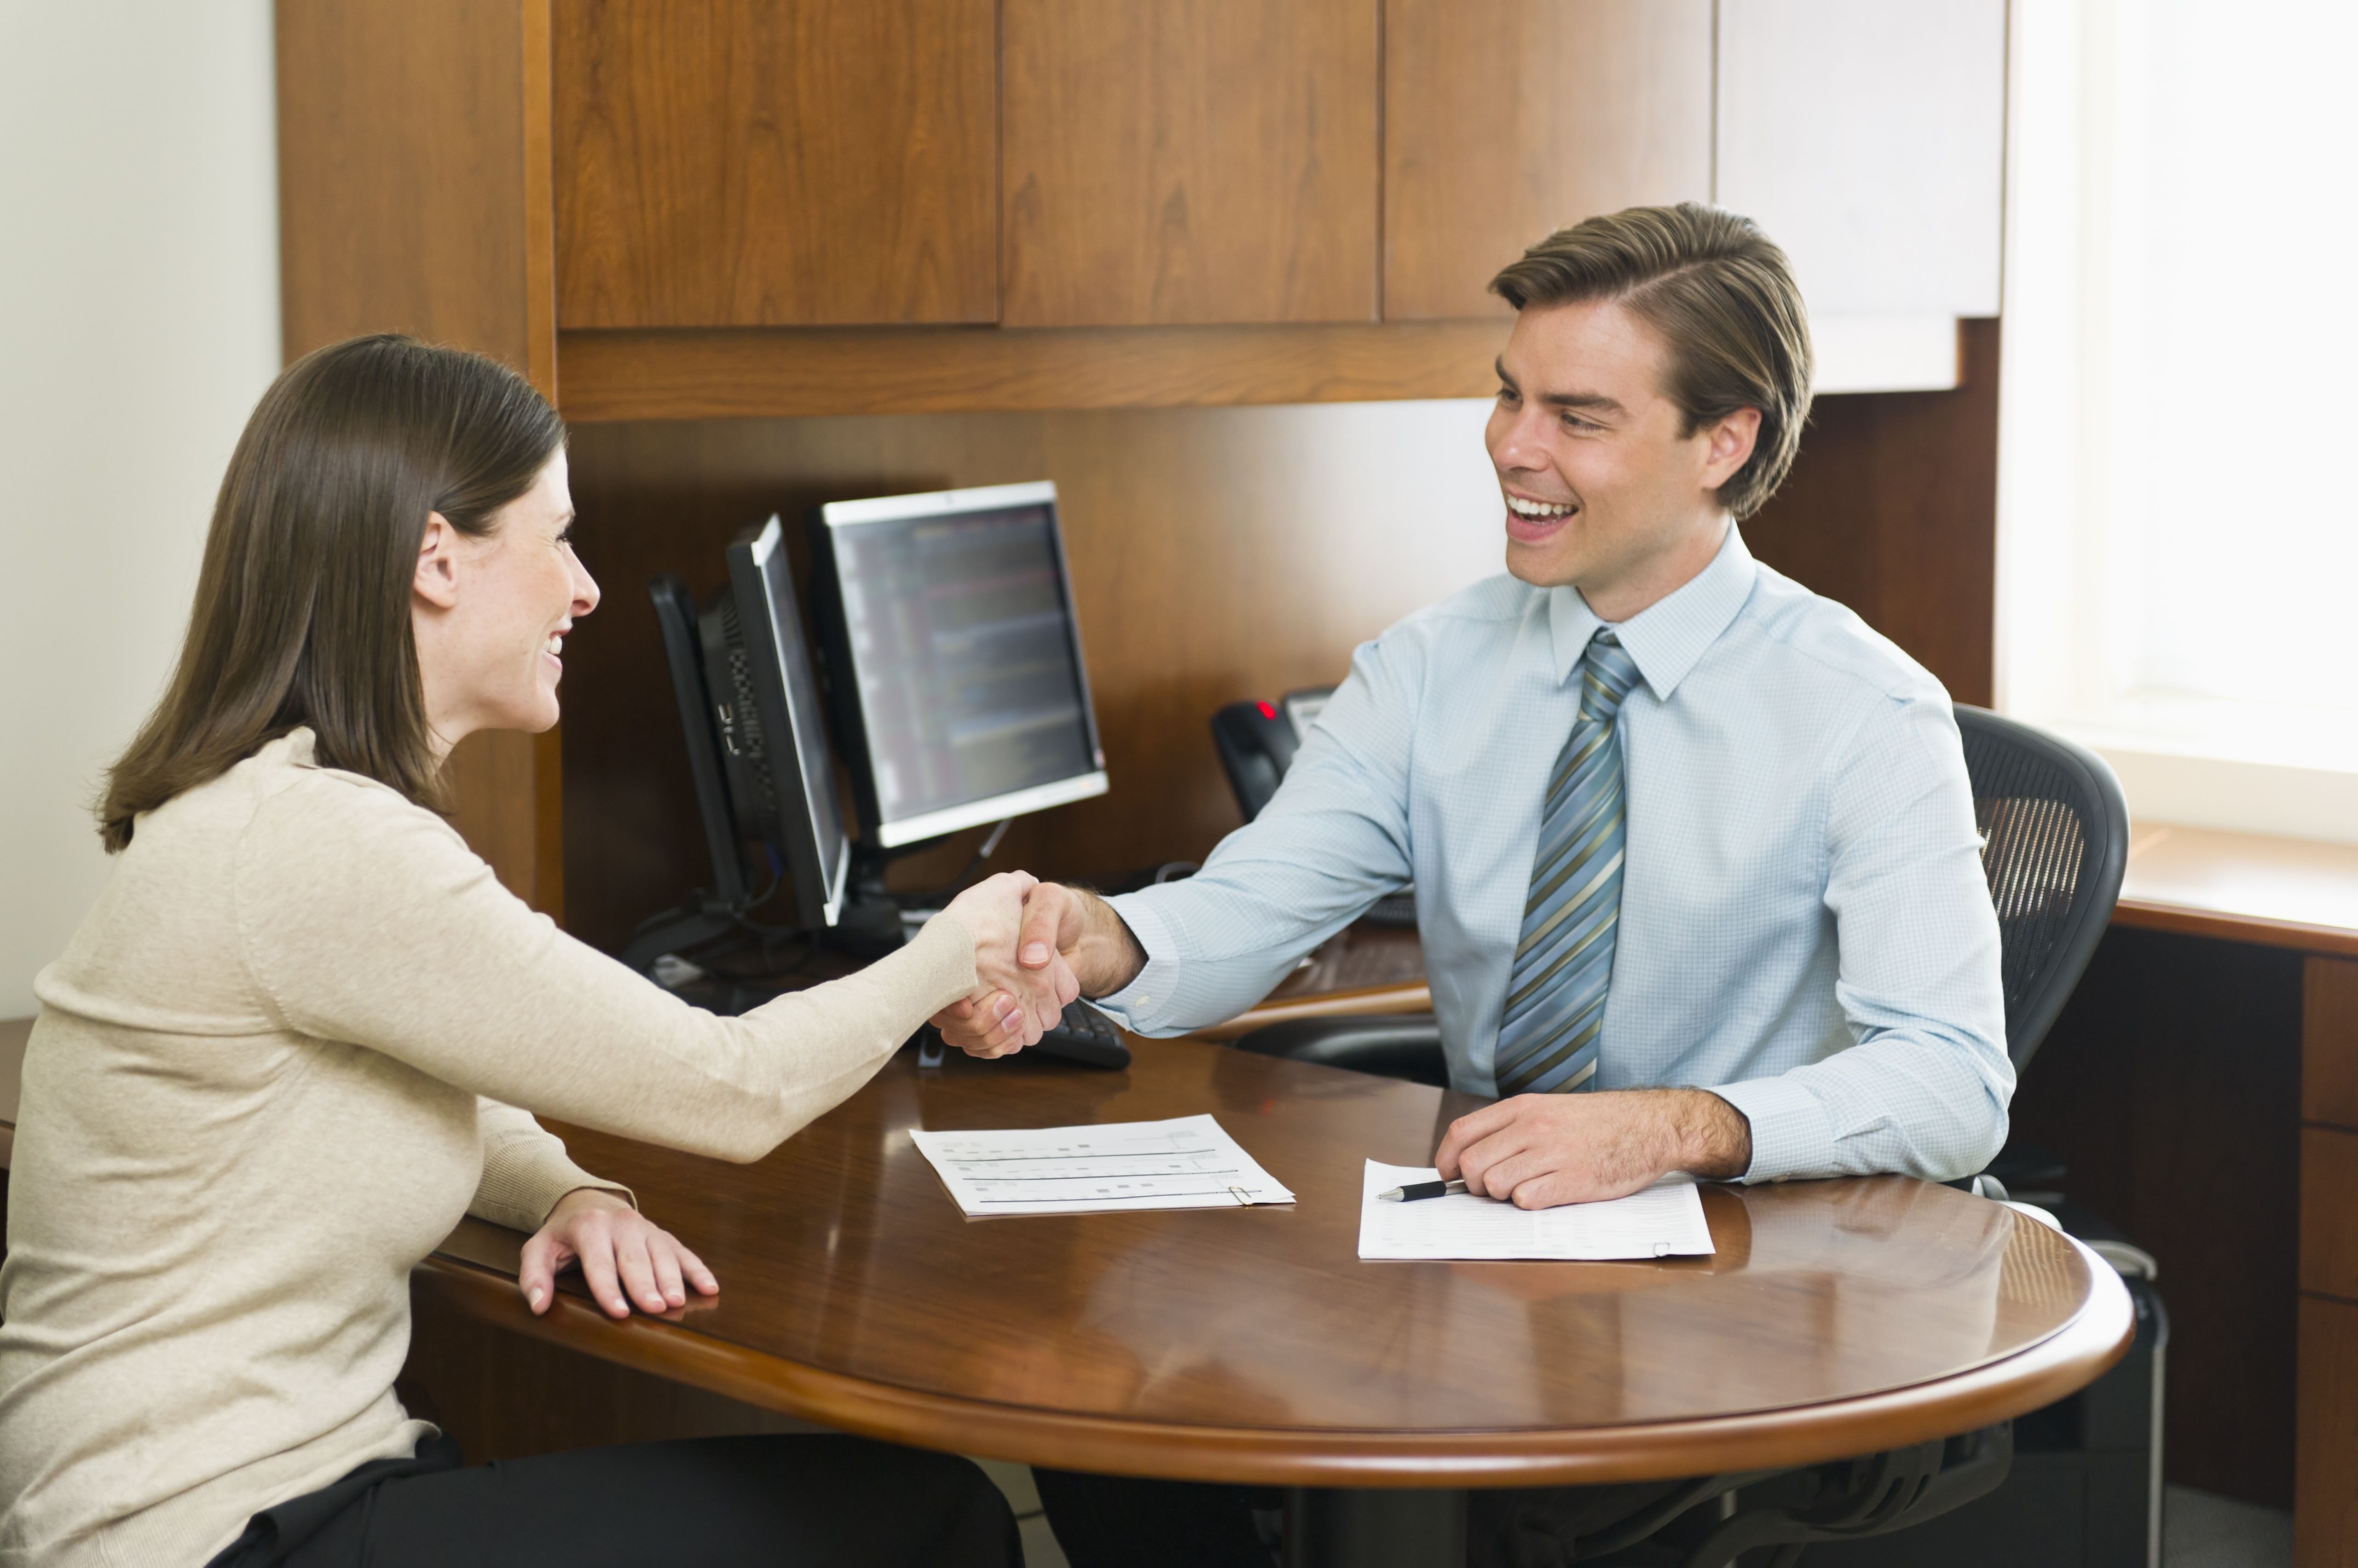 USA, New York, New York City, Businessman and client shaking hands in office